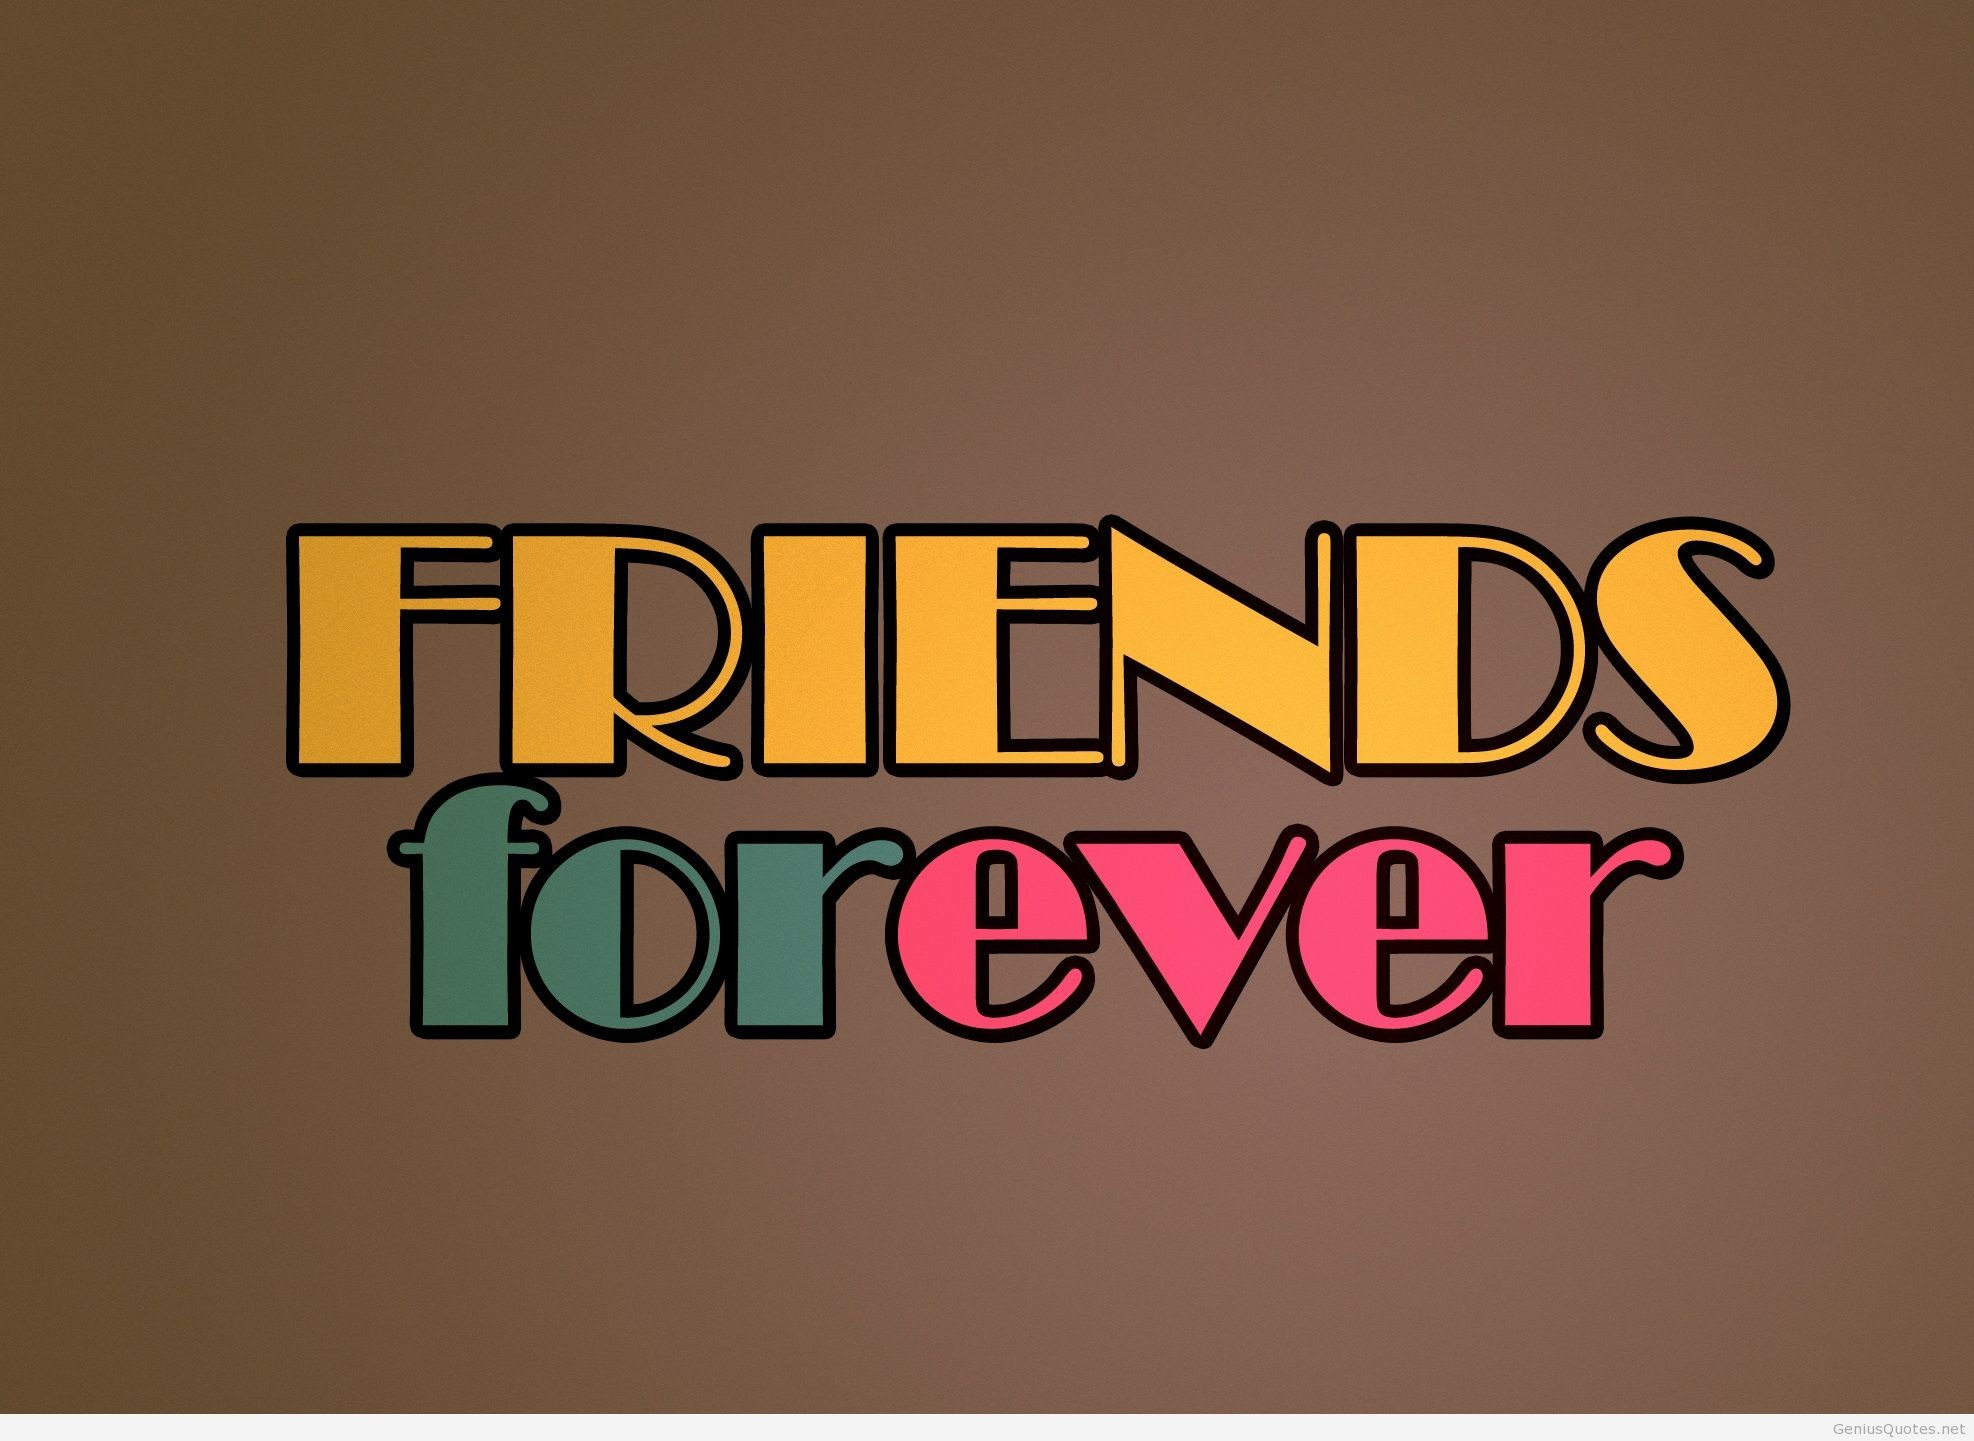 FRIENDS FOREVER, for all my friends free HD wallpaper